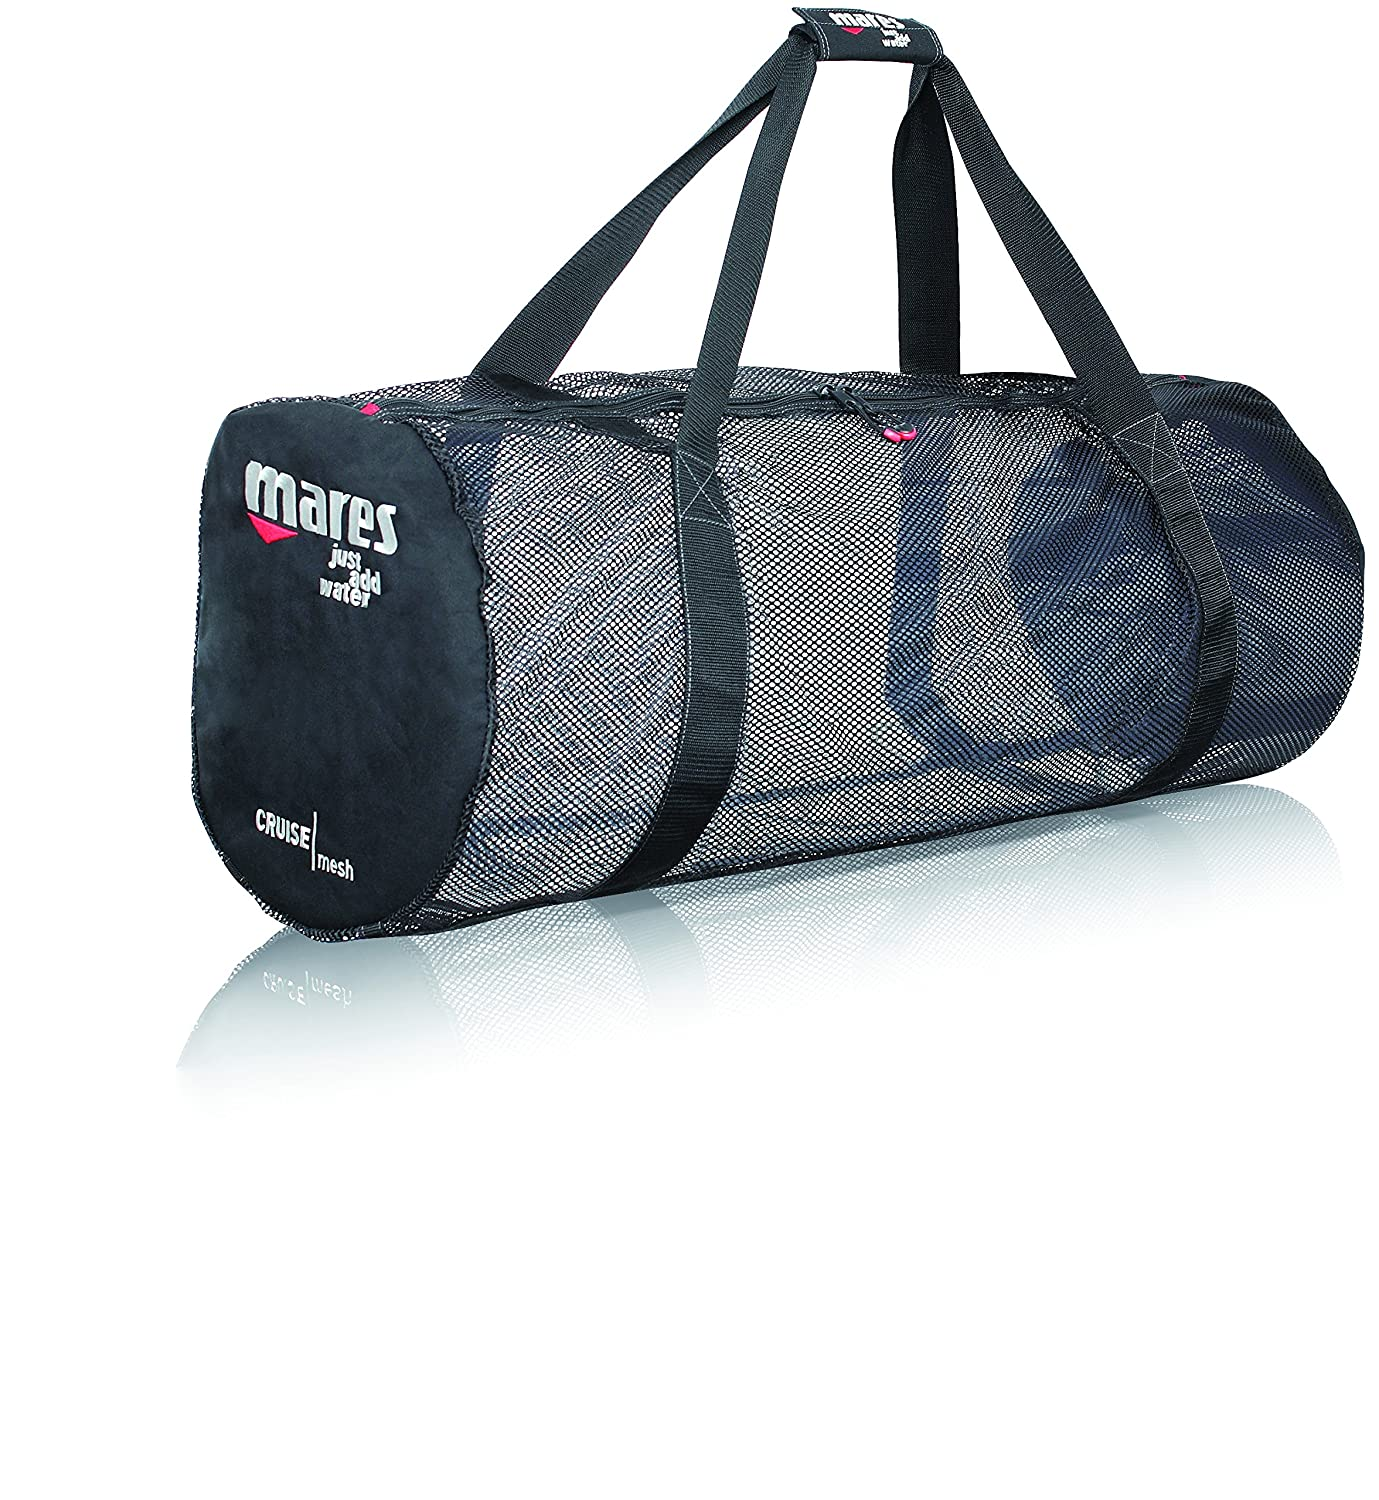 Mares Bag Cruise Mesh - Maleta, Color Negro, Talla Bx 415576